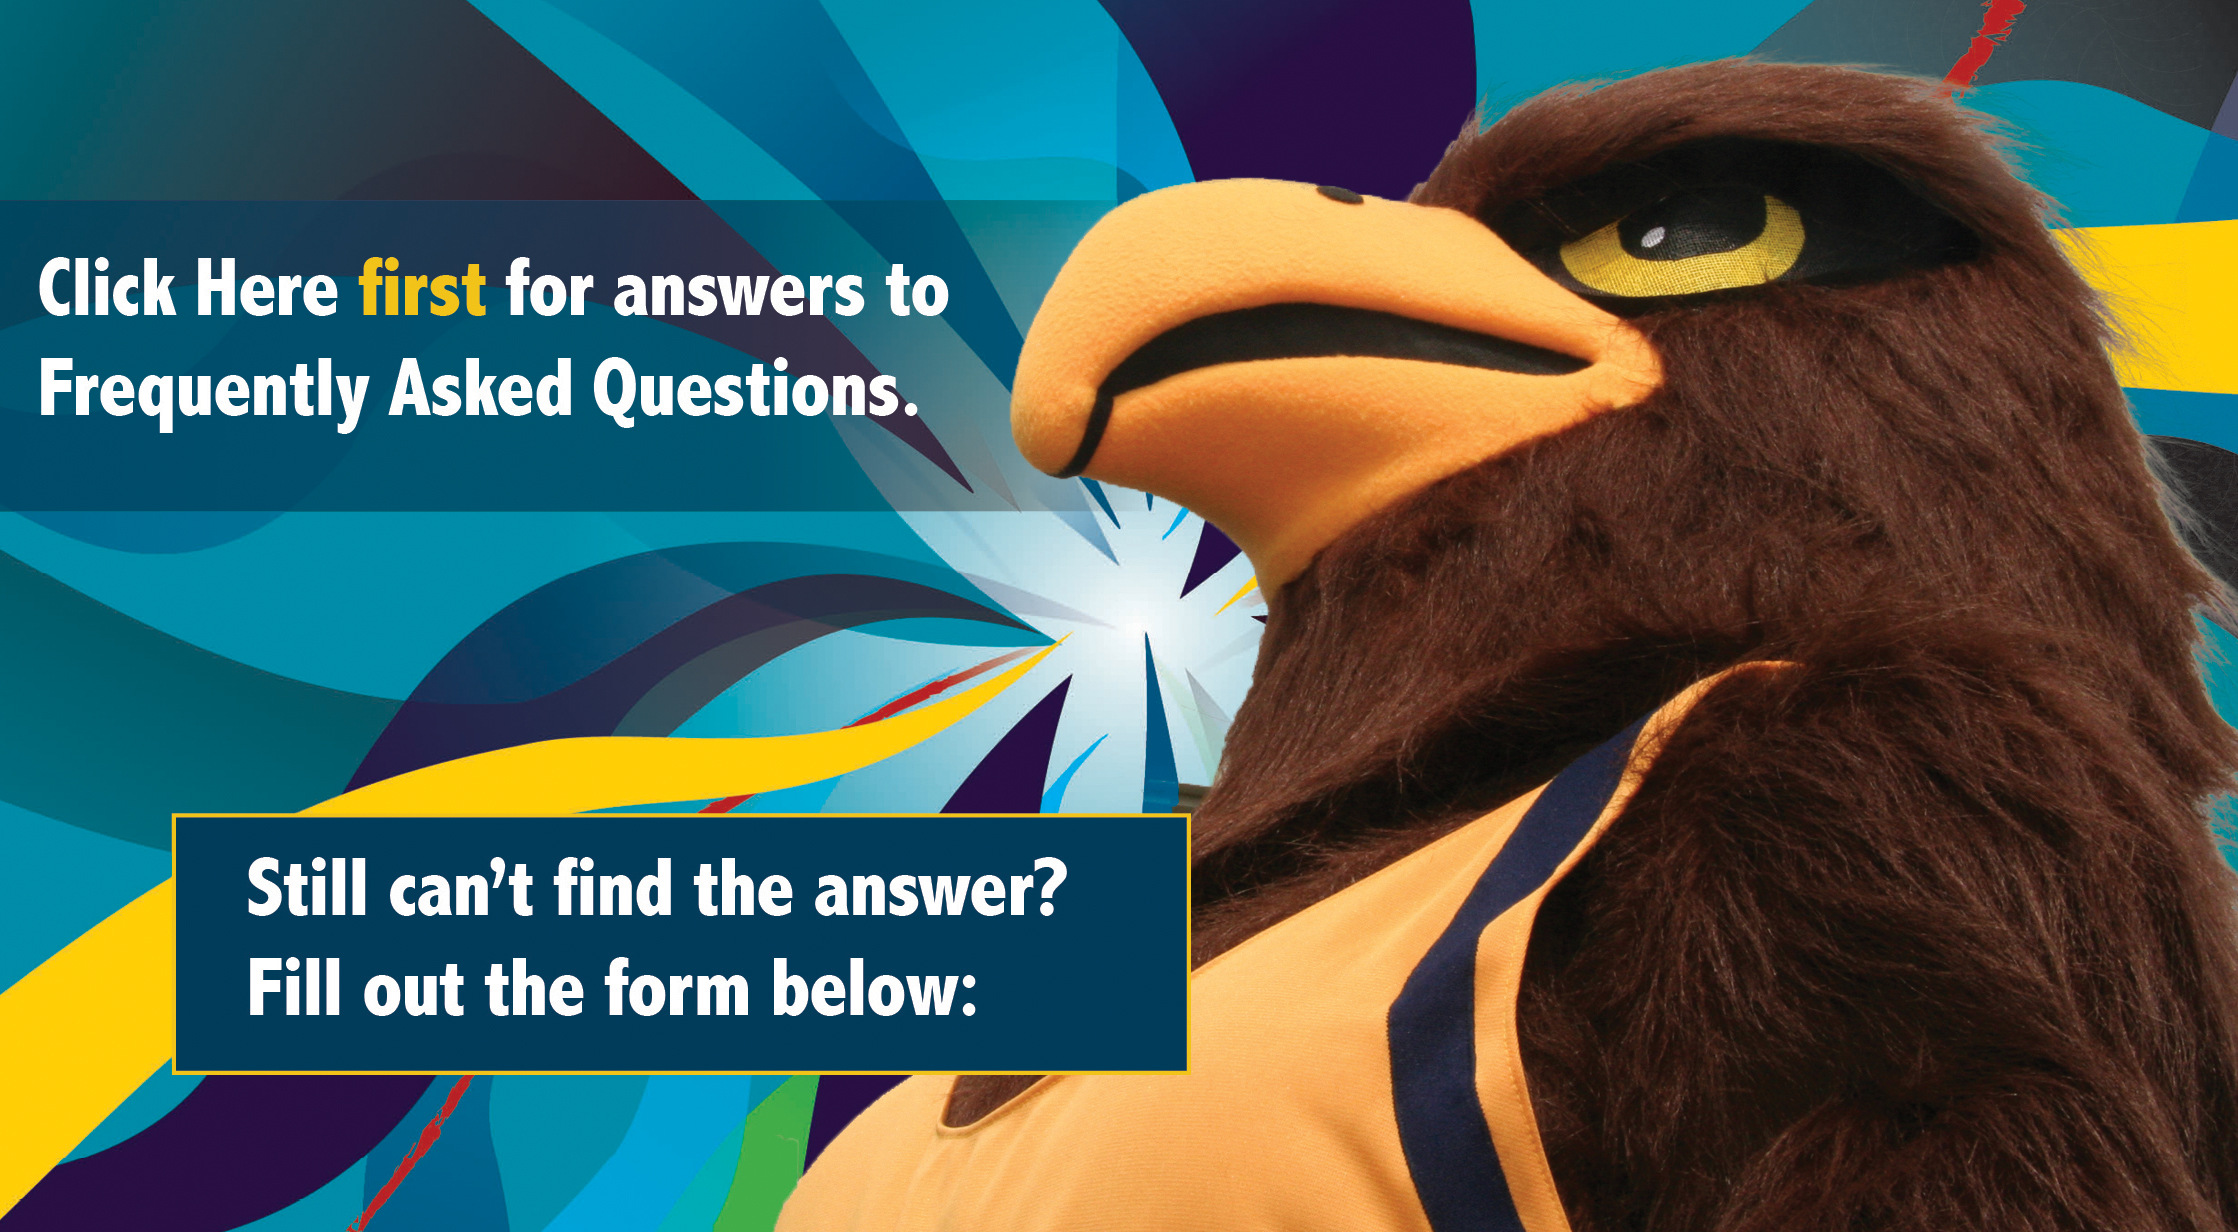 Image of CTC Mascot Swoop. Hyperlinked to FAQ page.